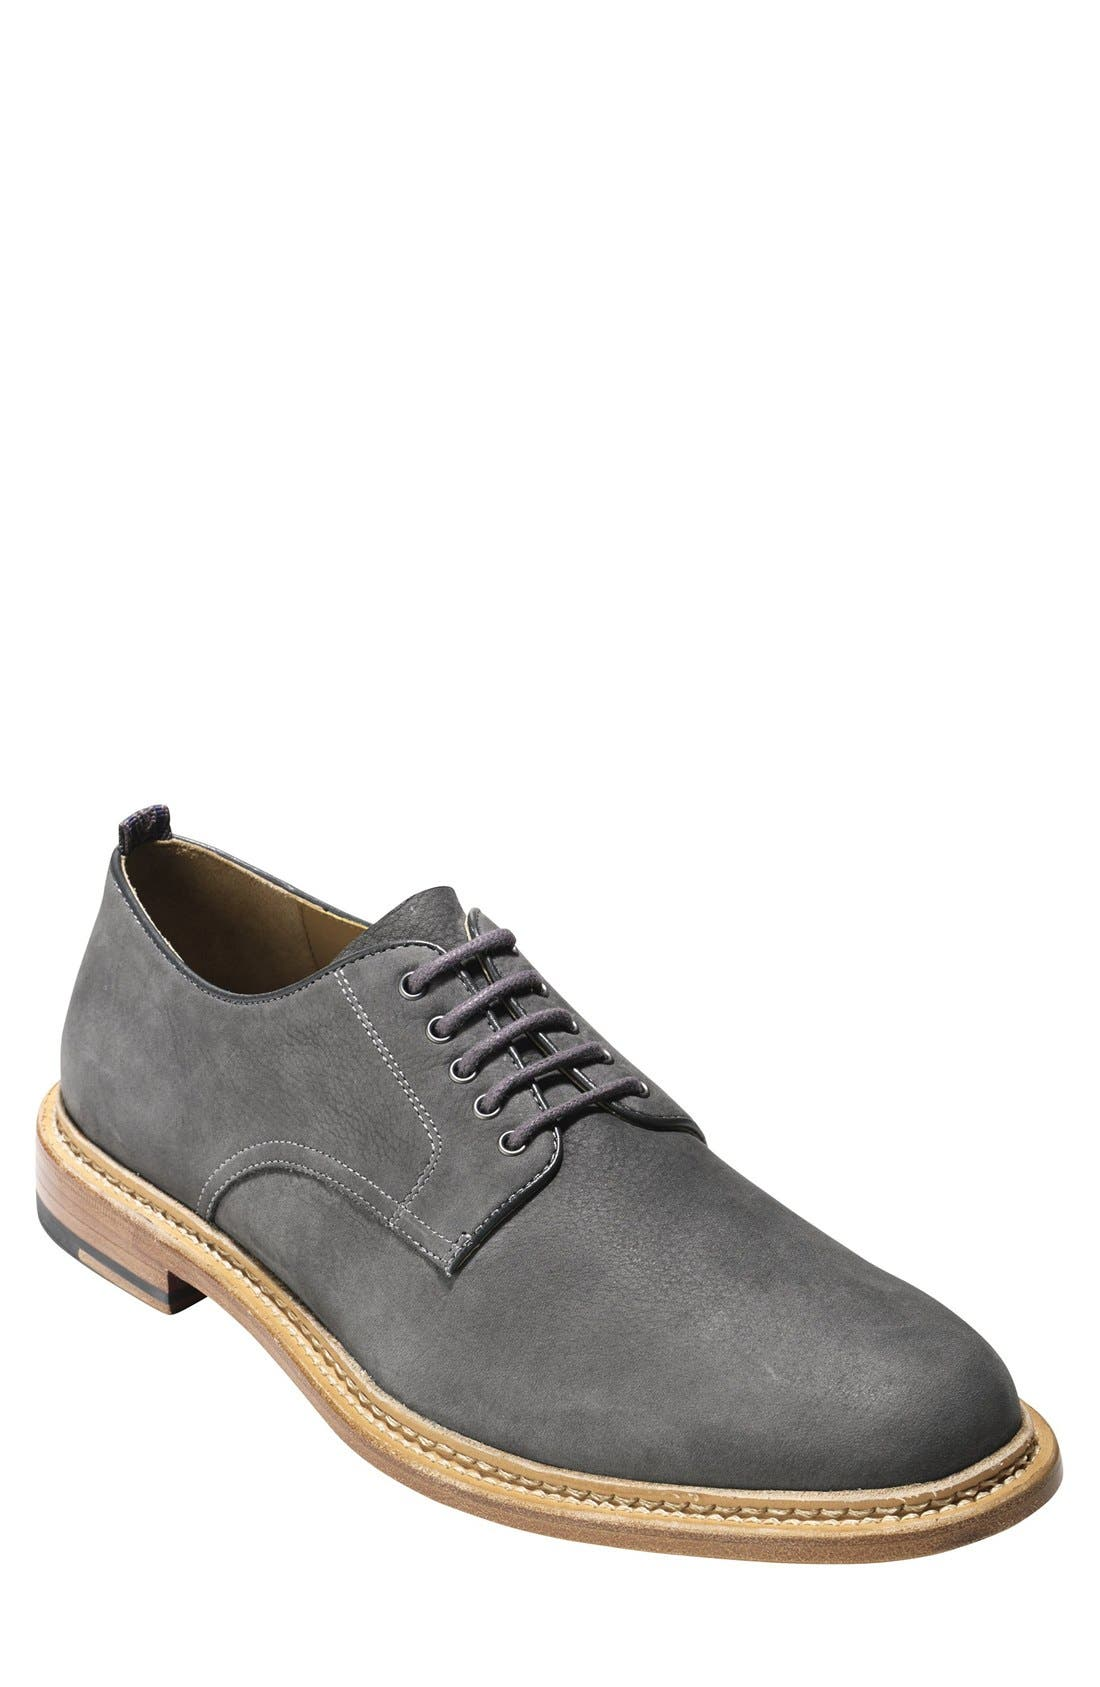 'Willet' Nubuck Plain Toe Derby,                             Main thumbnail 1, color,                             025